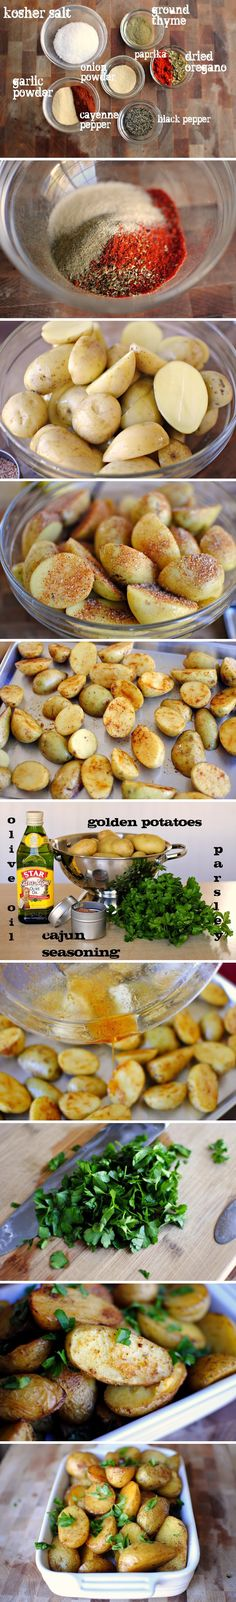 Seasoned Potatoes Cajun Spiced Potatoes - so delicious, perfect side for any main dish!Cajun Spiced Potatoes - so delicious, perfect side for any main dish! I Love Food, Good Food, Yummy Food, Vegetarian Recipes, Cooking Recipes, Healthy Recipes, Seasoned Potatoes, Cajun Potatoes, Vegan Dishes